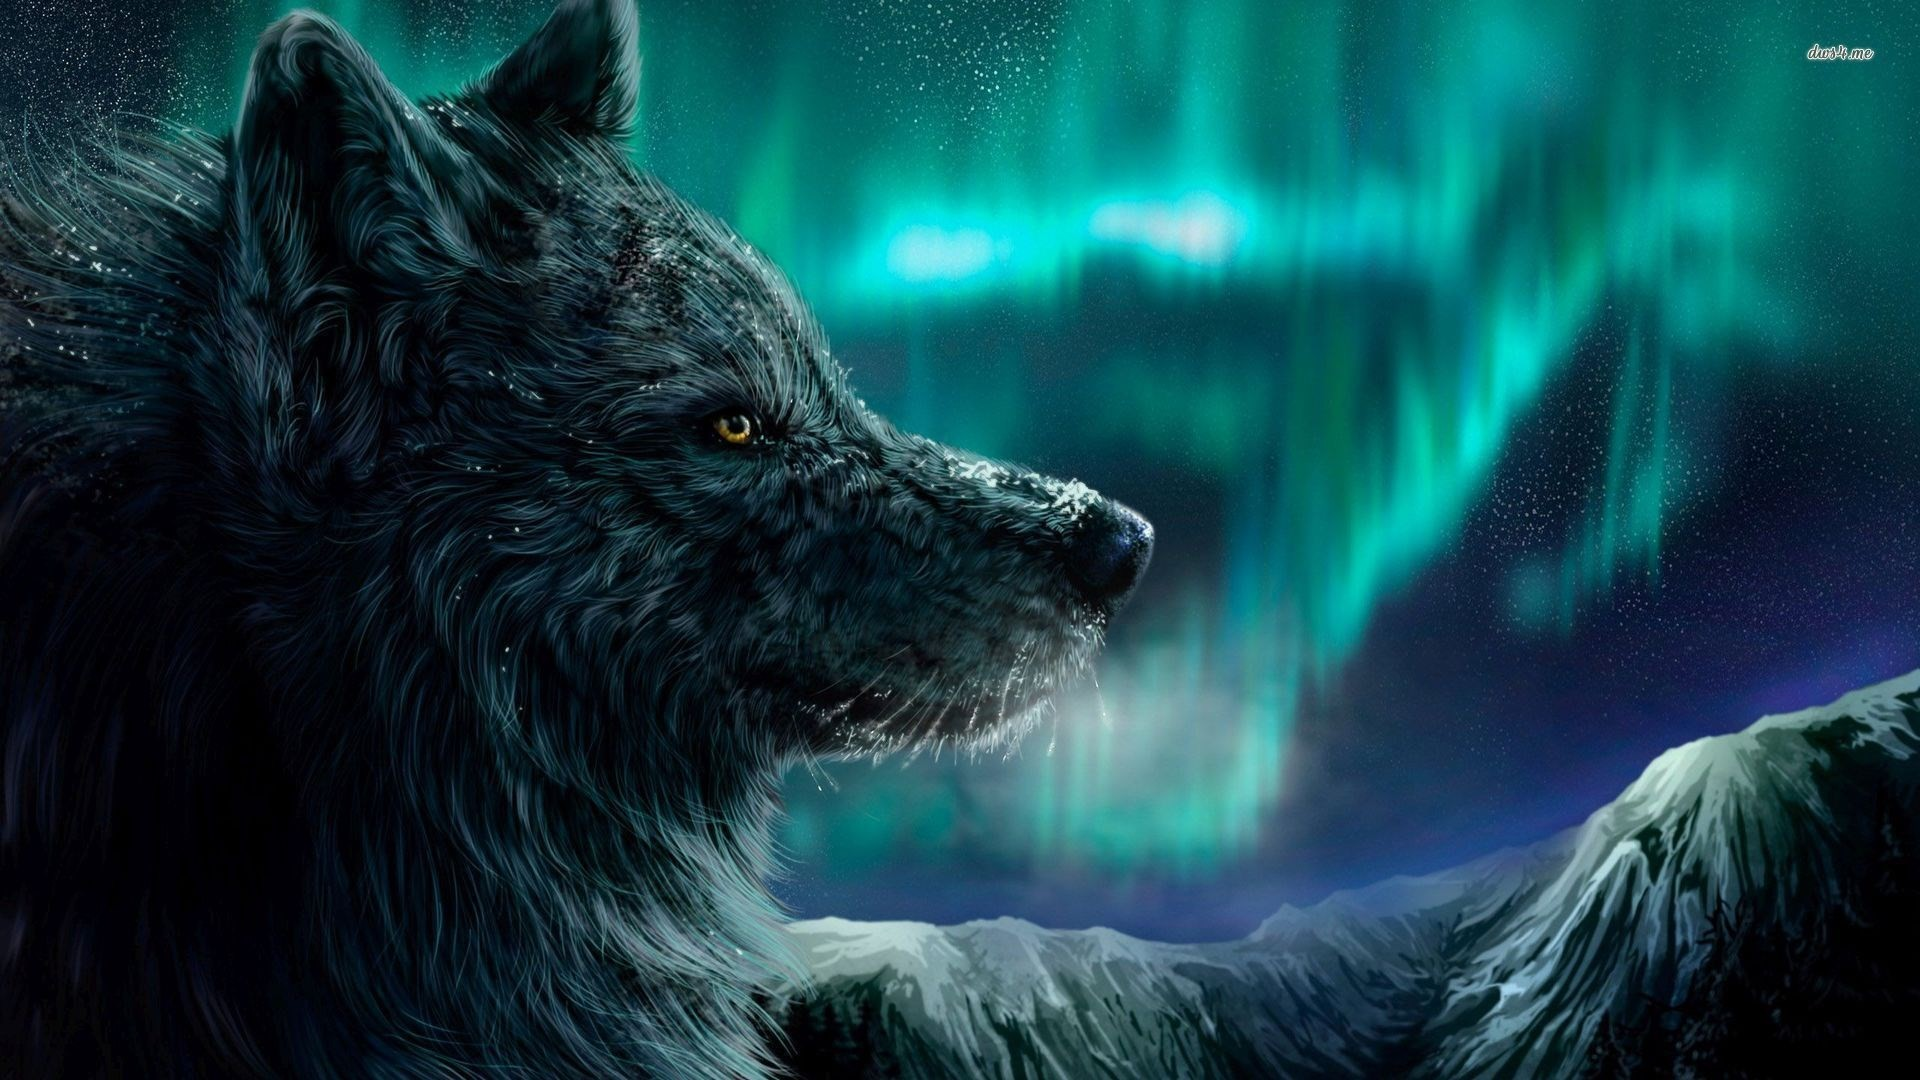 Psychedelic Girl Wallpaper Hd Wolf Wallpapers 1080p 71 Images